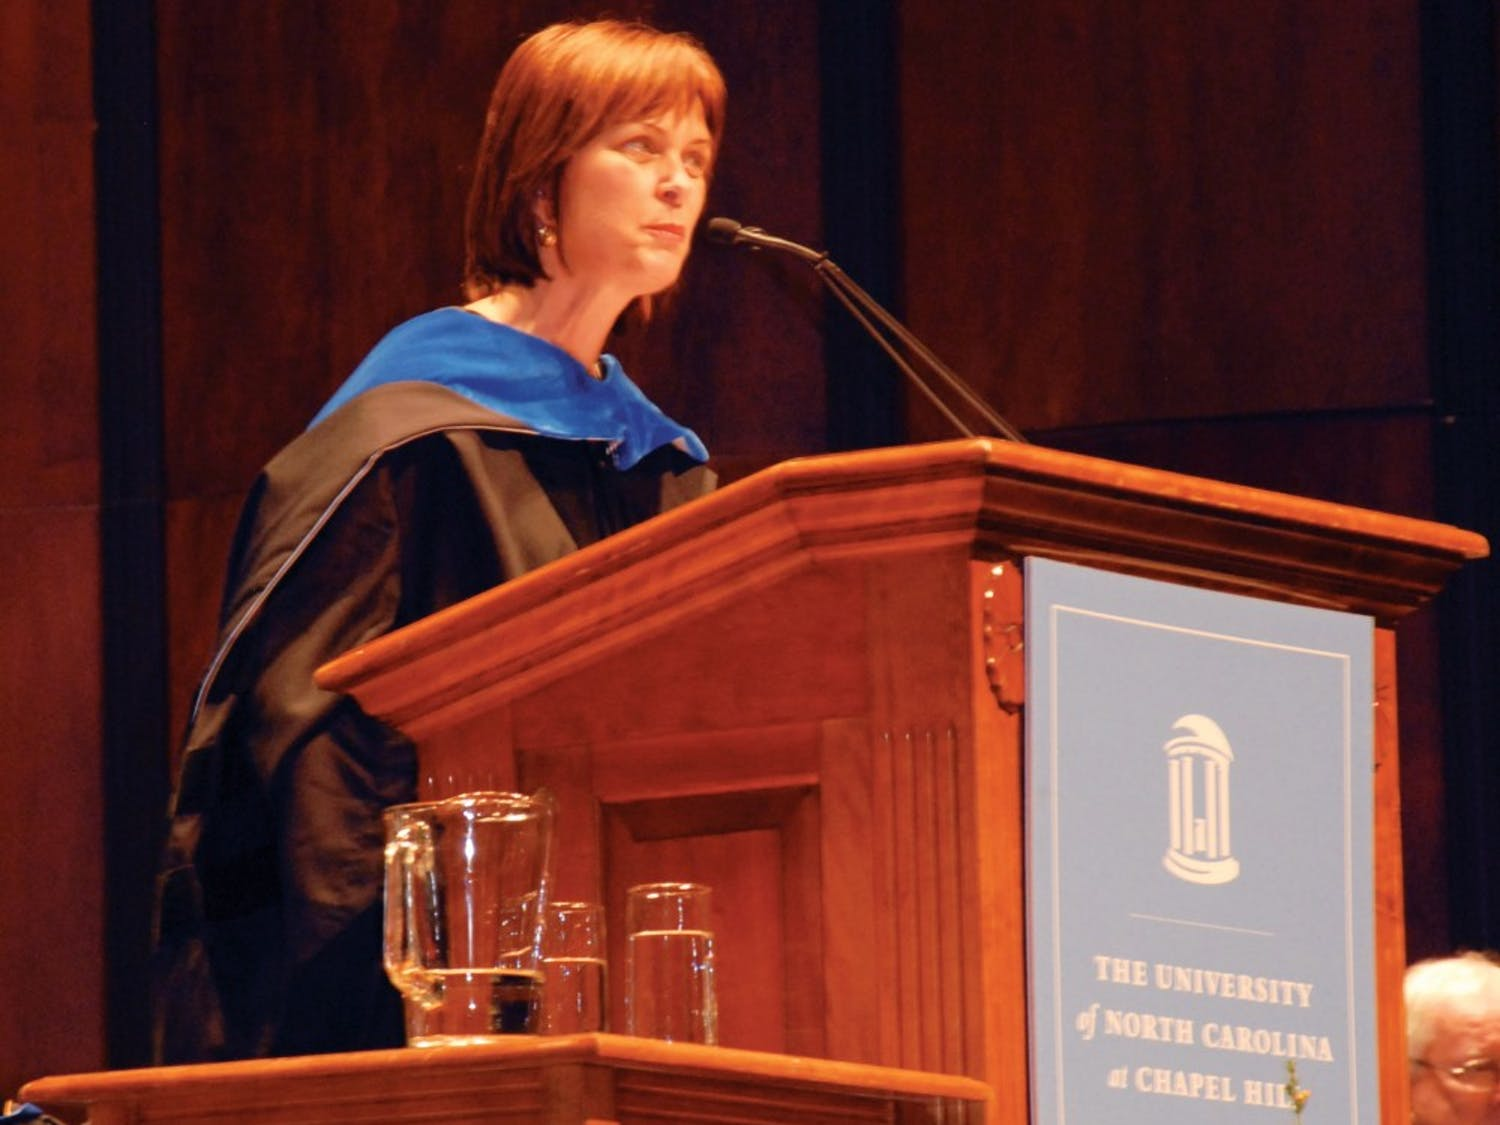 Heather Munroe-Blum was the keynote speaker Tuesday. She is the 16th principal and vice chancellor of McGill University in Montreal.